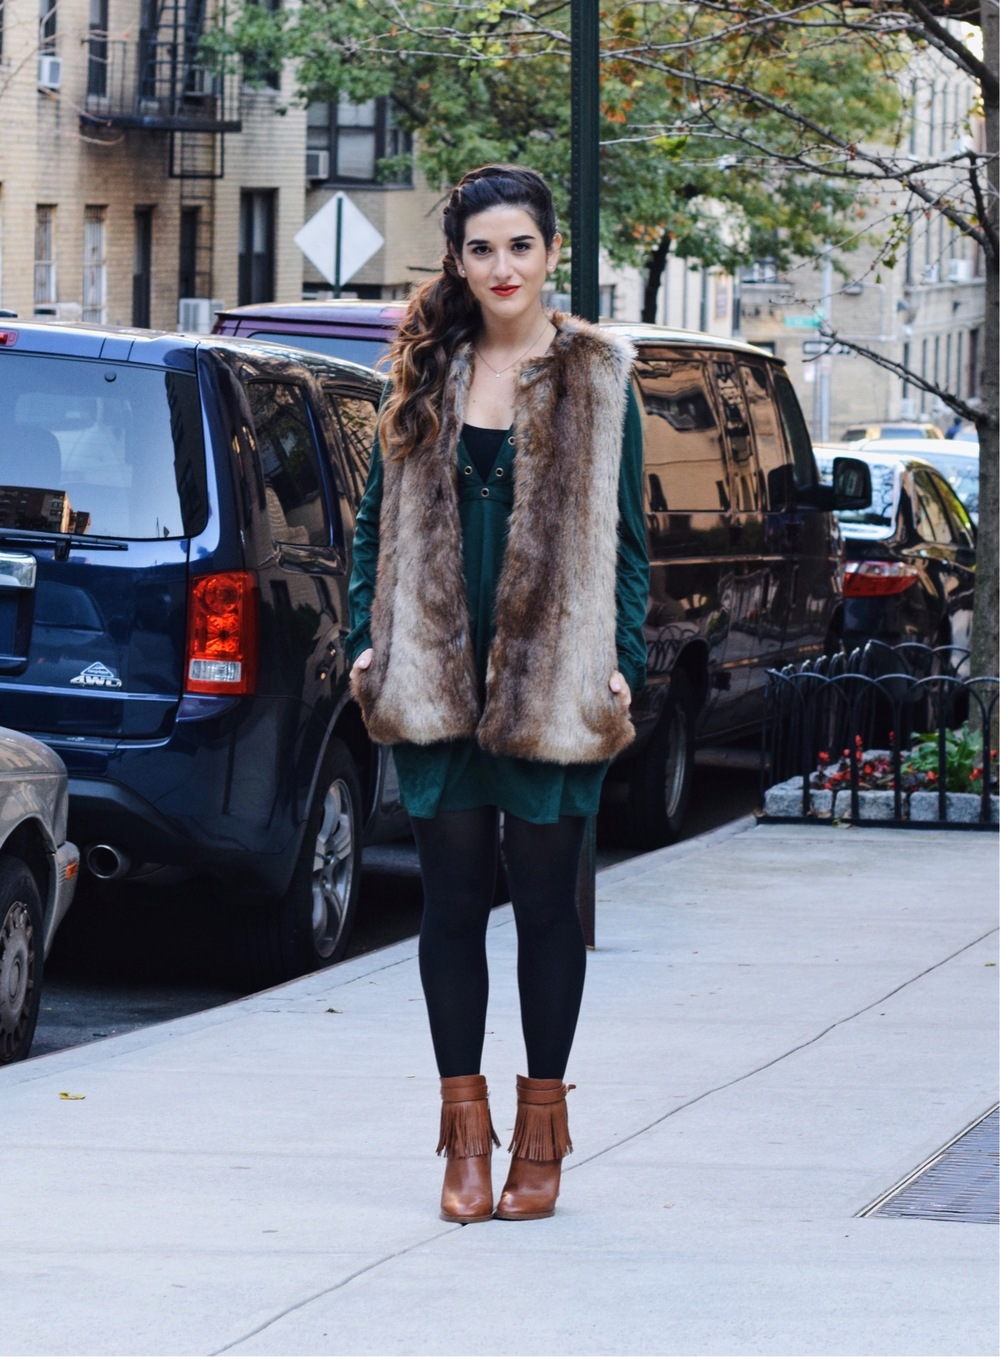 Suede Eyelet Dress Trescool Louboutins & Love Fashion Blog Esther Santer Street Style NYC Blogger Fall Winter Black Tights Ivanka Trump Fringe Booties Camel Hair Girl Women Beautiful Photoshoot Model Trendy Zara Fur Vest Outfit OOTD Inspo What To Wear.JPG